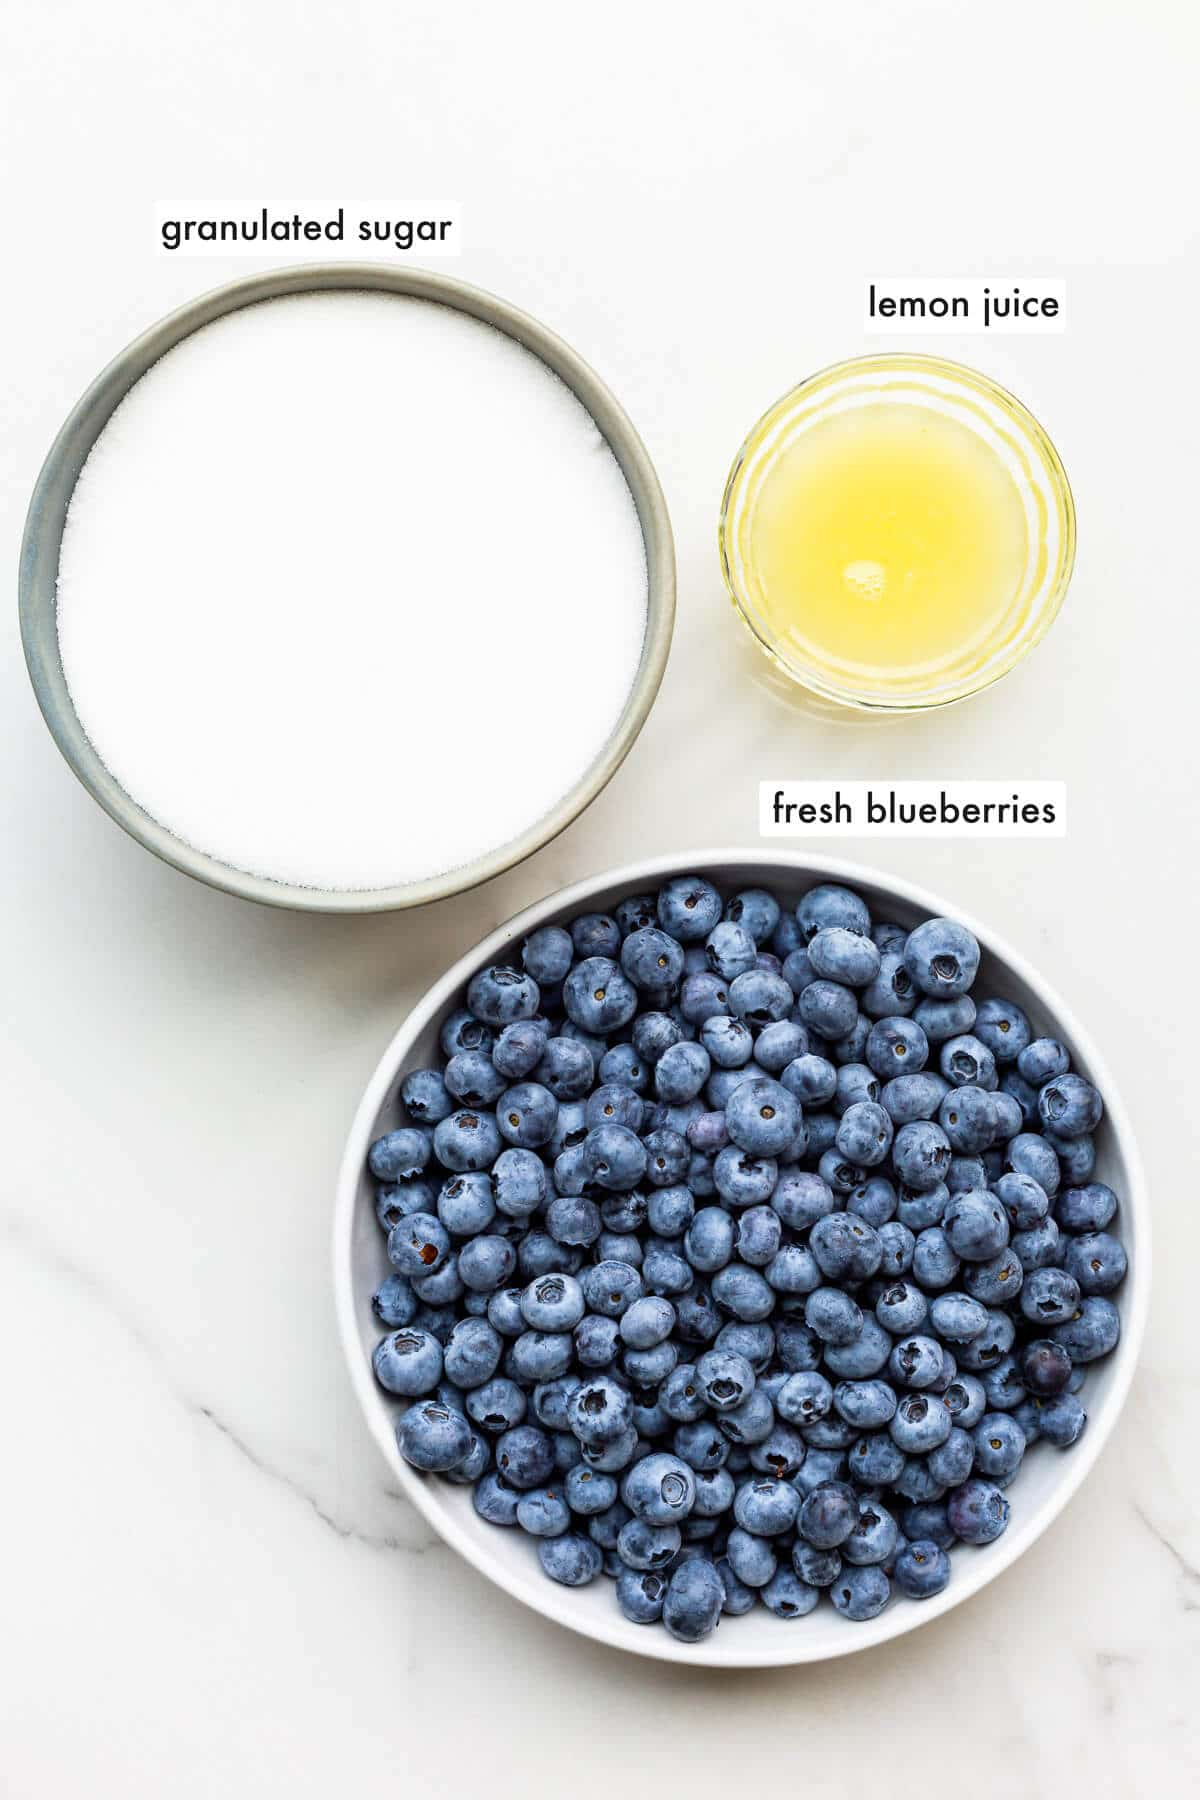 The three ingredients needed to make homemade blueberry jam, including fresh blueberries, granulated sugar, and lemon juice.